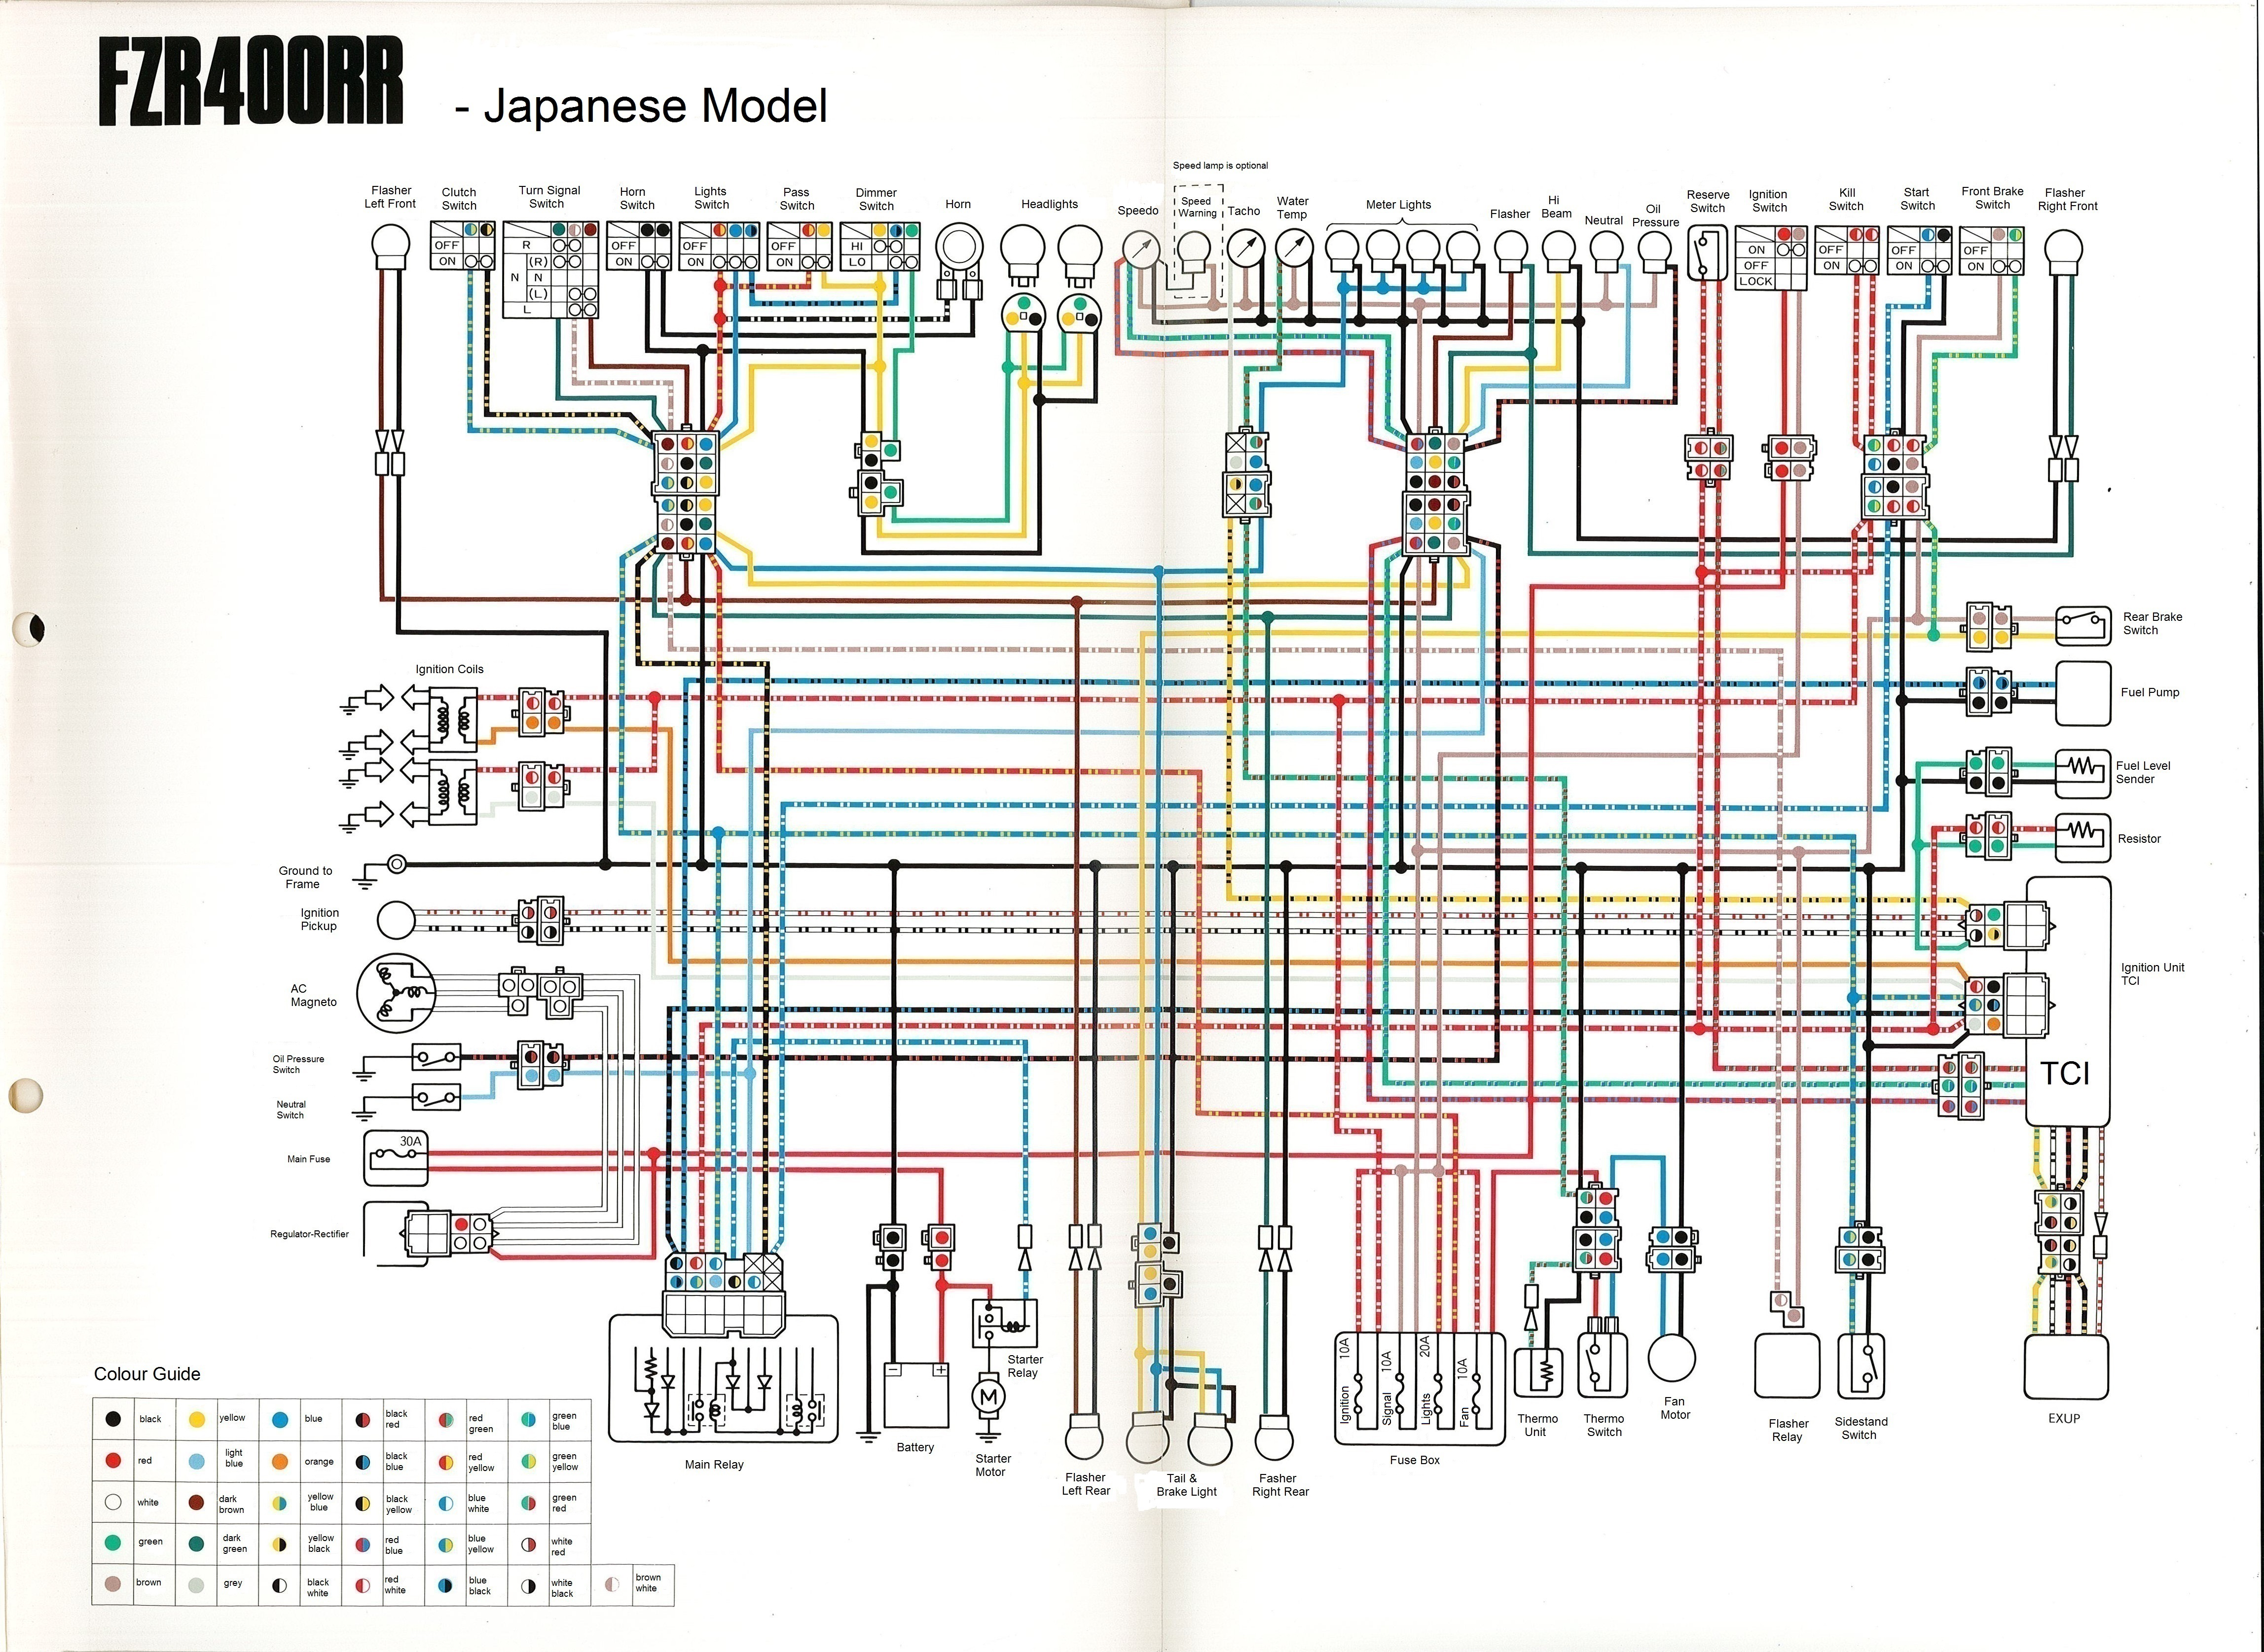 WiringDiagram_Yamaha_FZR400RR_3TJ1_English wiring diagram needed for 1989 yamaha fzr1000 genesis wiring fzr 1000 exup wiring diagram at bayanpartner.co